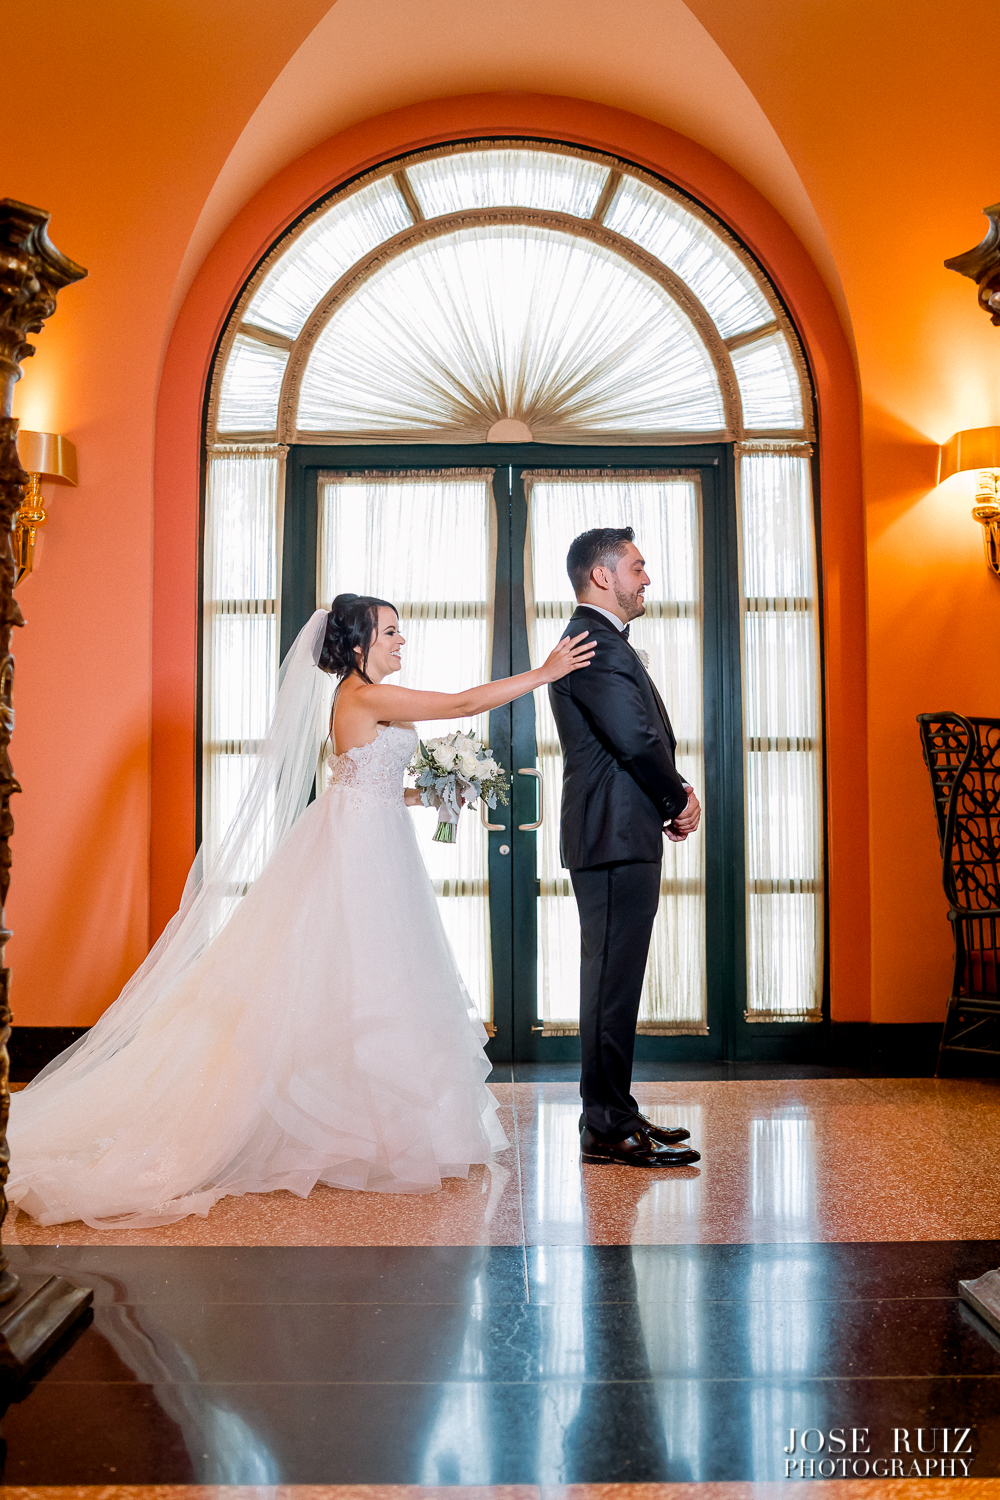 Jose Ruiz Photography- Madalyn & Joel-0028.jpg